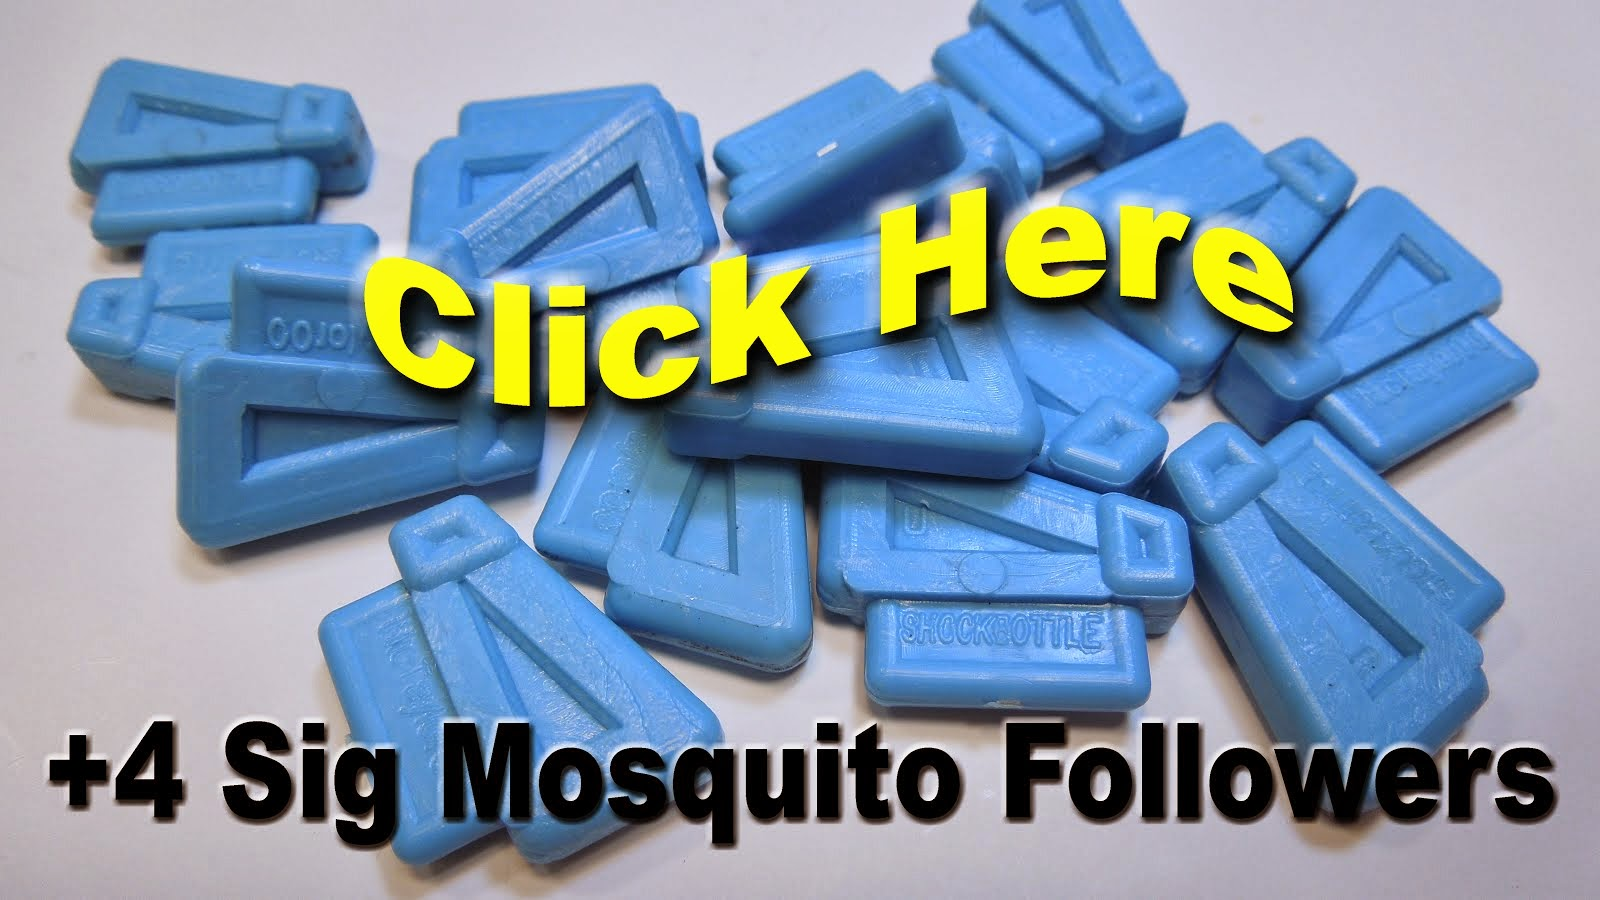 Sig Sauer Mosquito +4 Follower